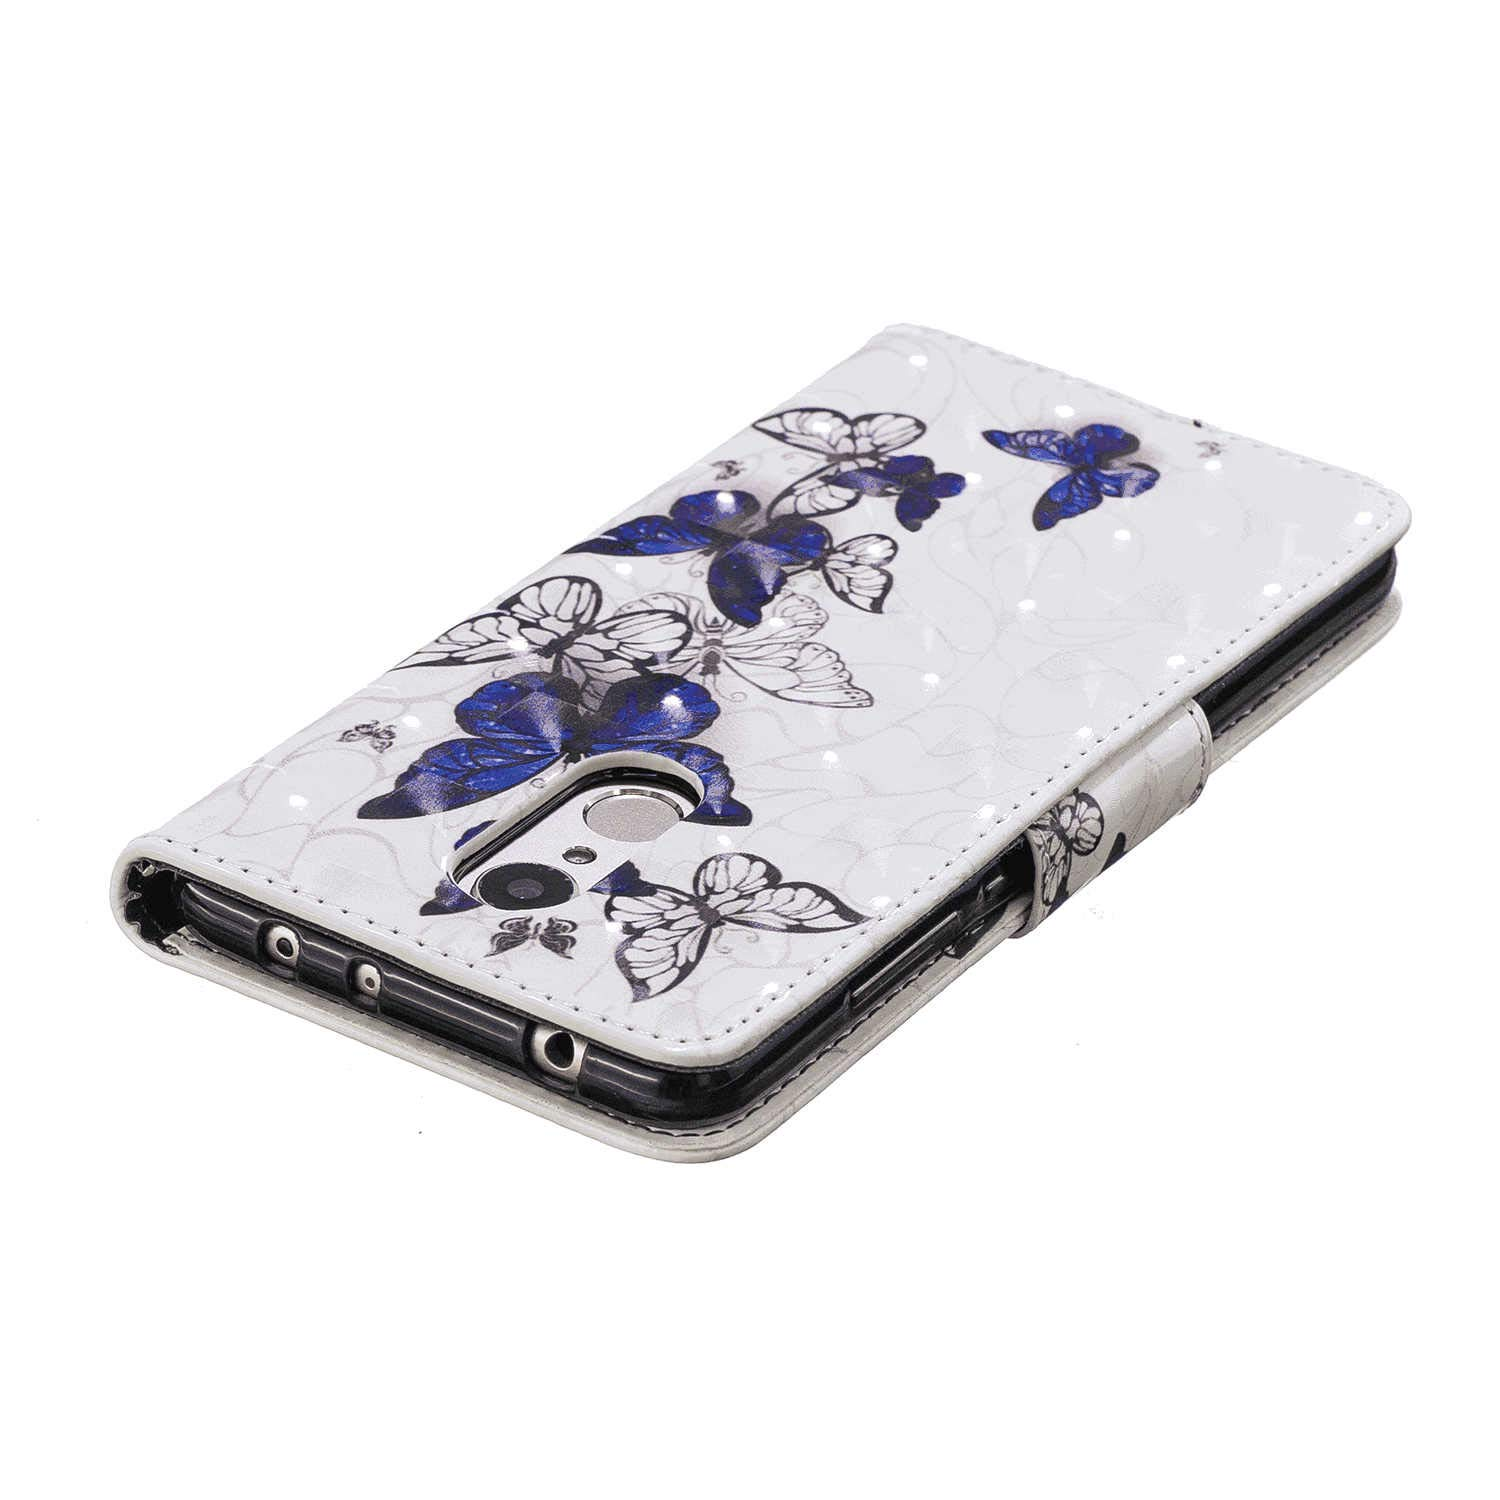 Flip Case for Huawei P20 LITE Leather Cover Business Gifts Wallet with Extra Waterproof Underwater Case